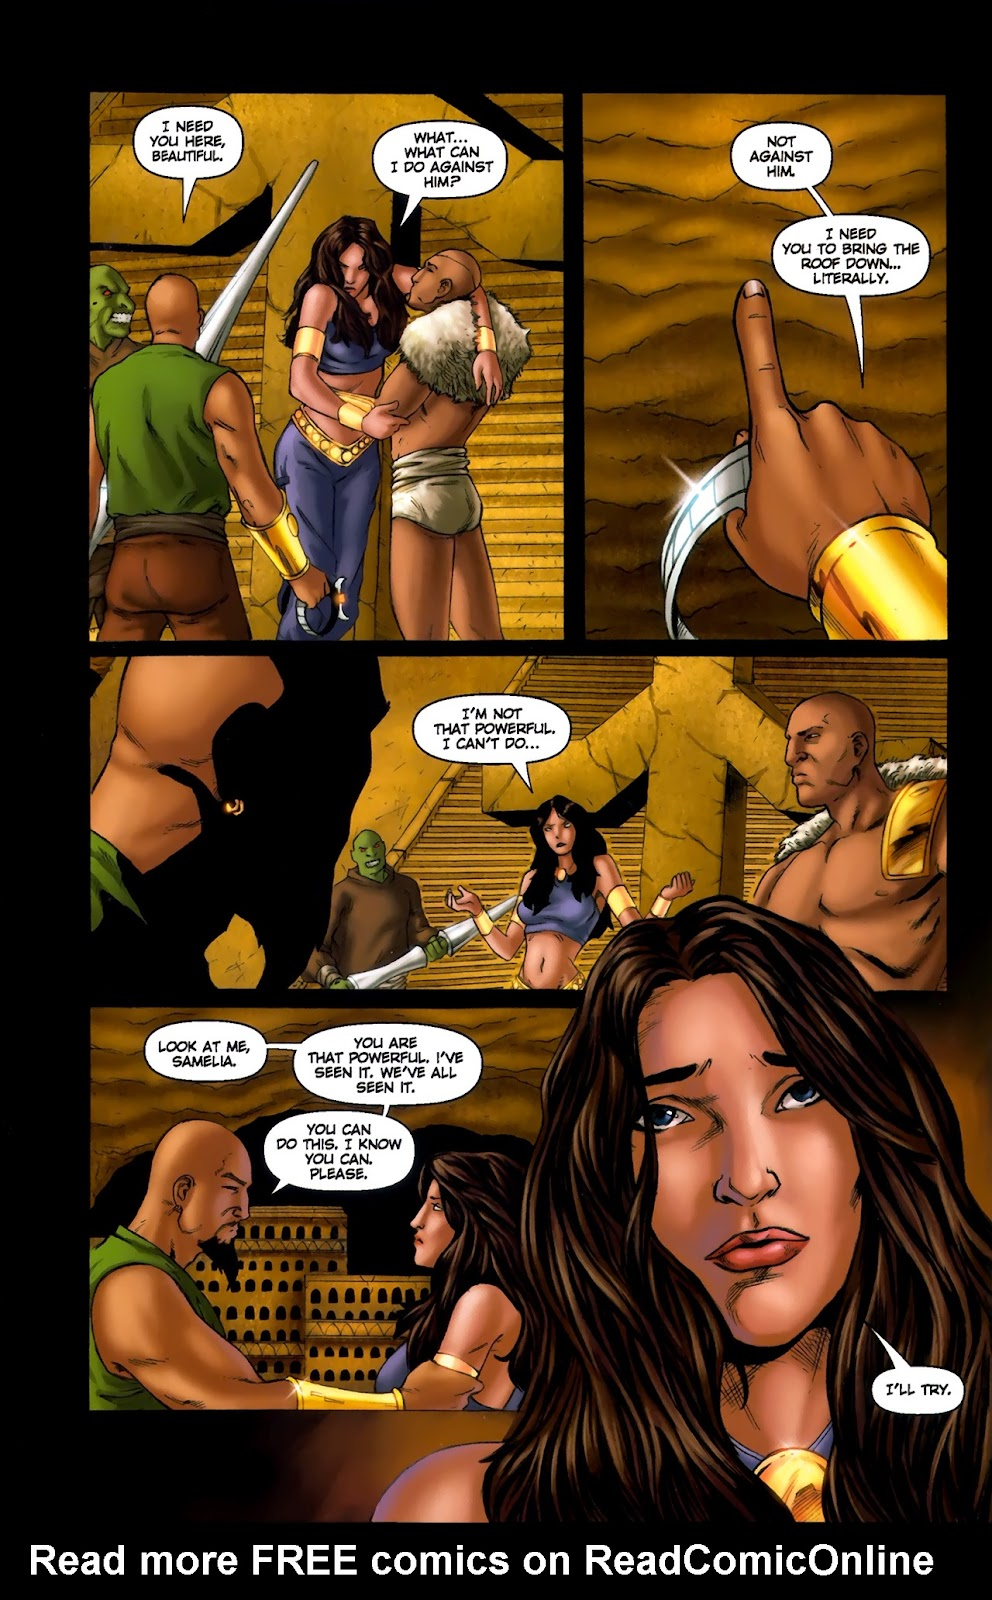 1001 Arabian Nights: The Adventures of Sinbad Issue #13 Page 15